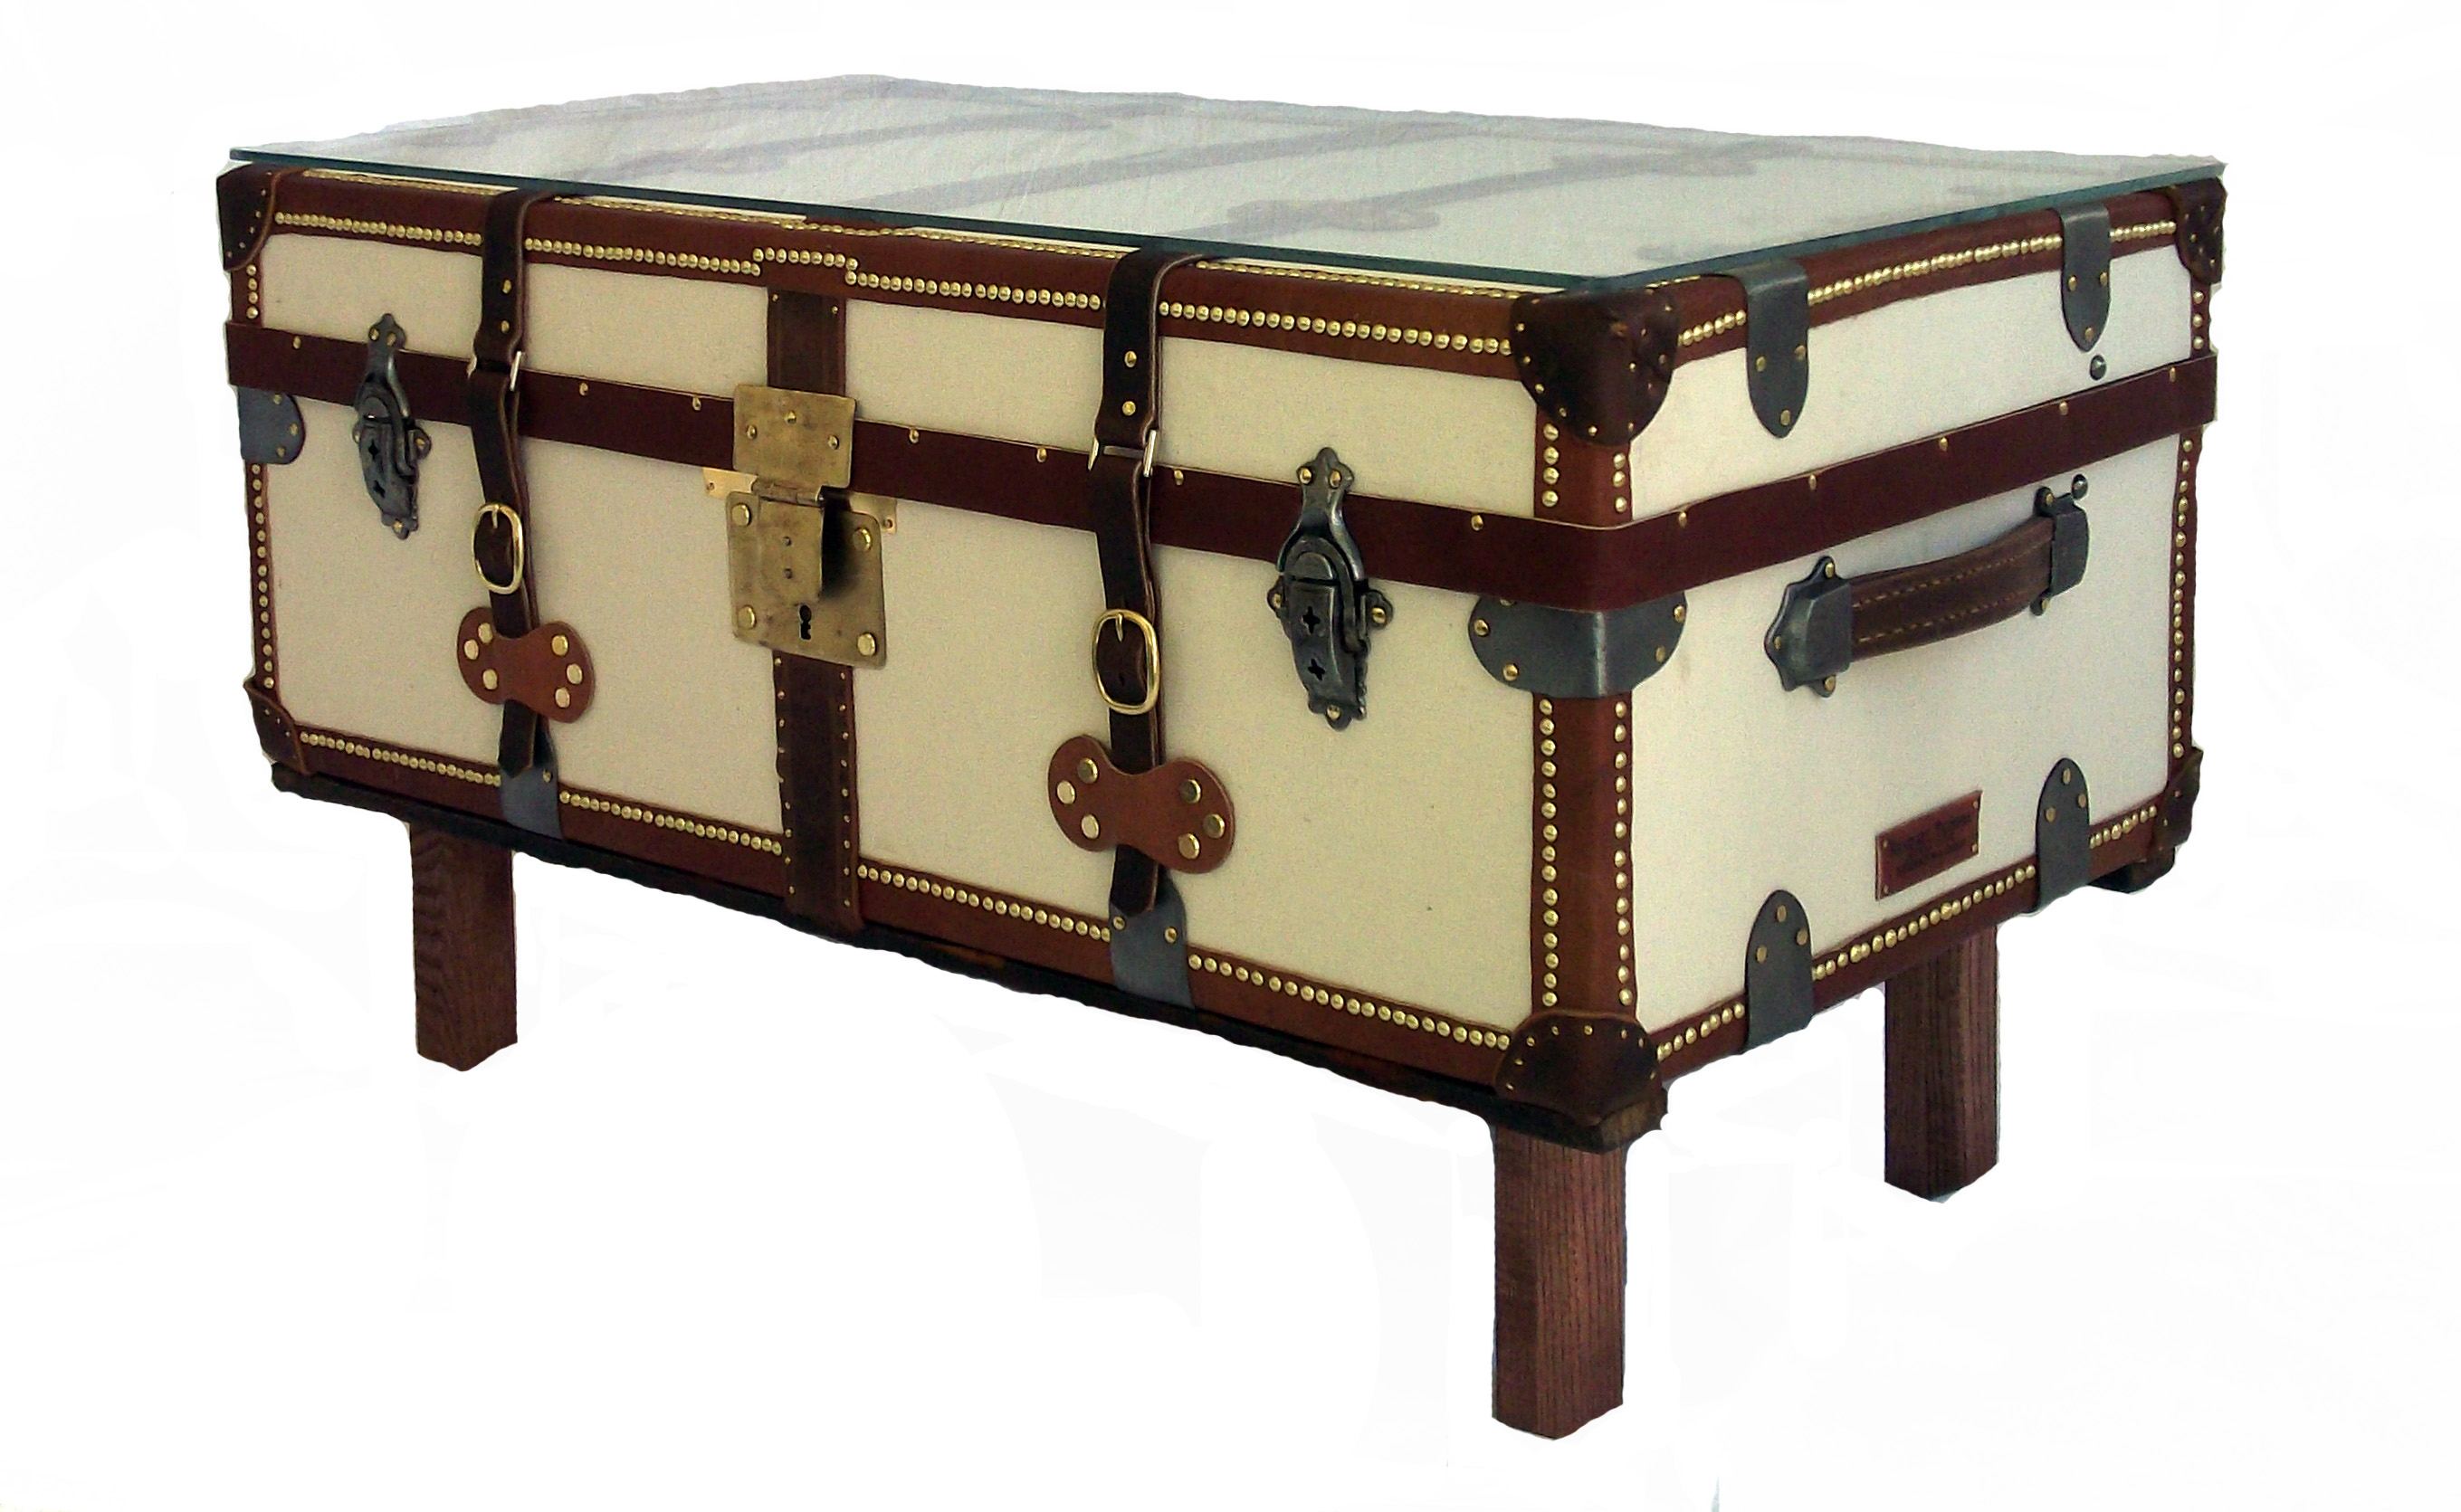 French Antique Trunk Coffee Table Omero Home : antique cabin trunk coffee table2 from www.omerohome.com size 2719 x 1671 jpeg 761kB